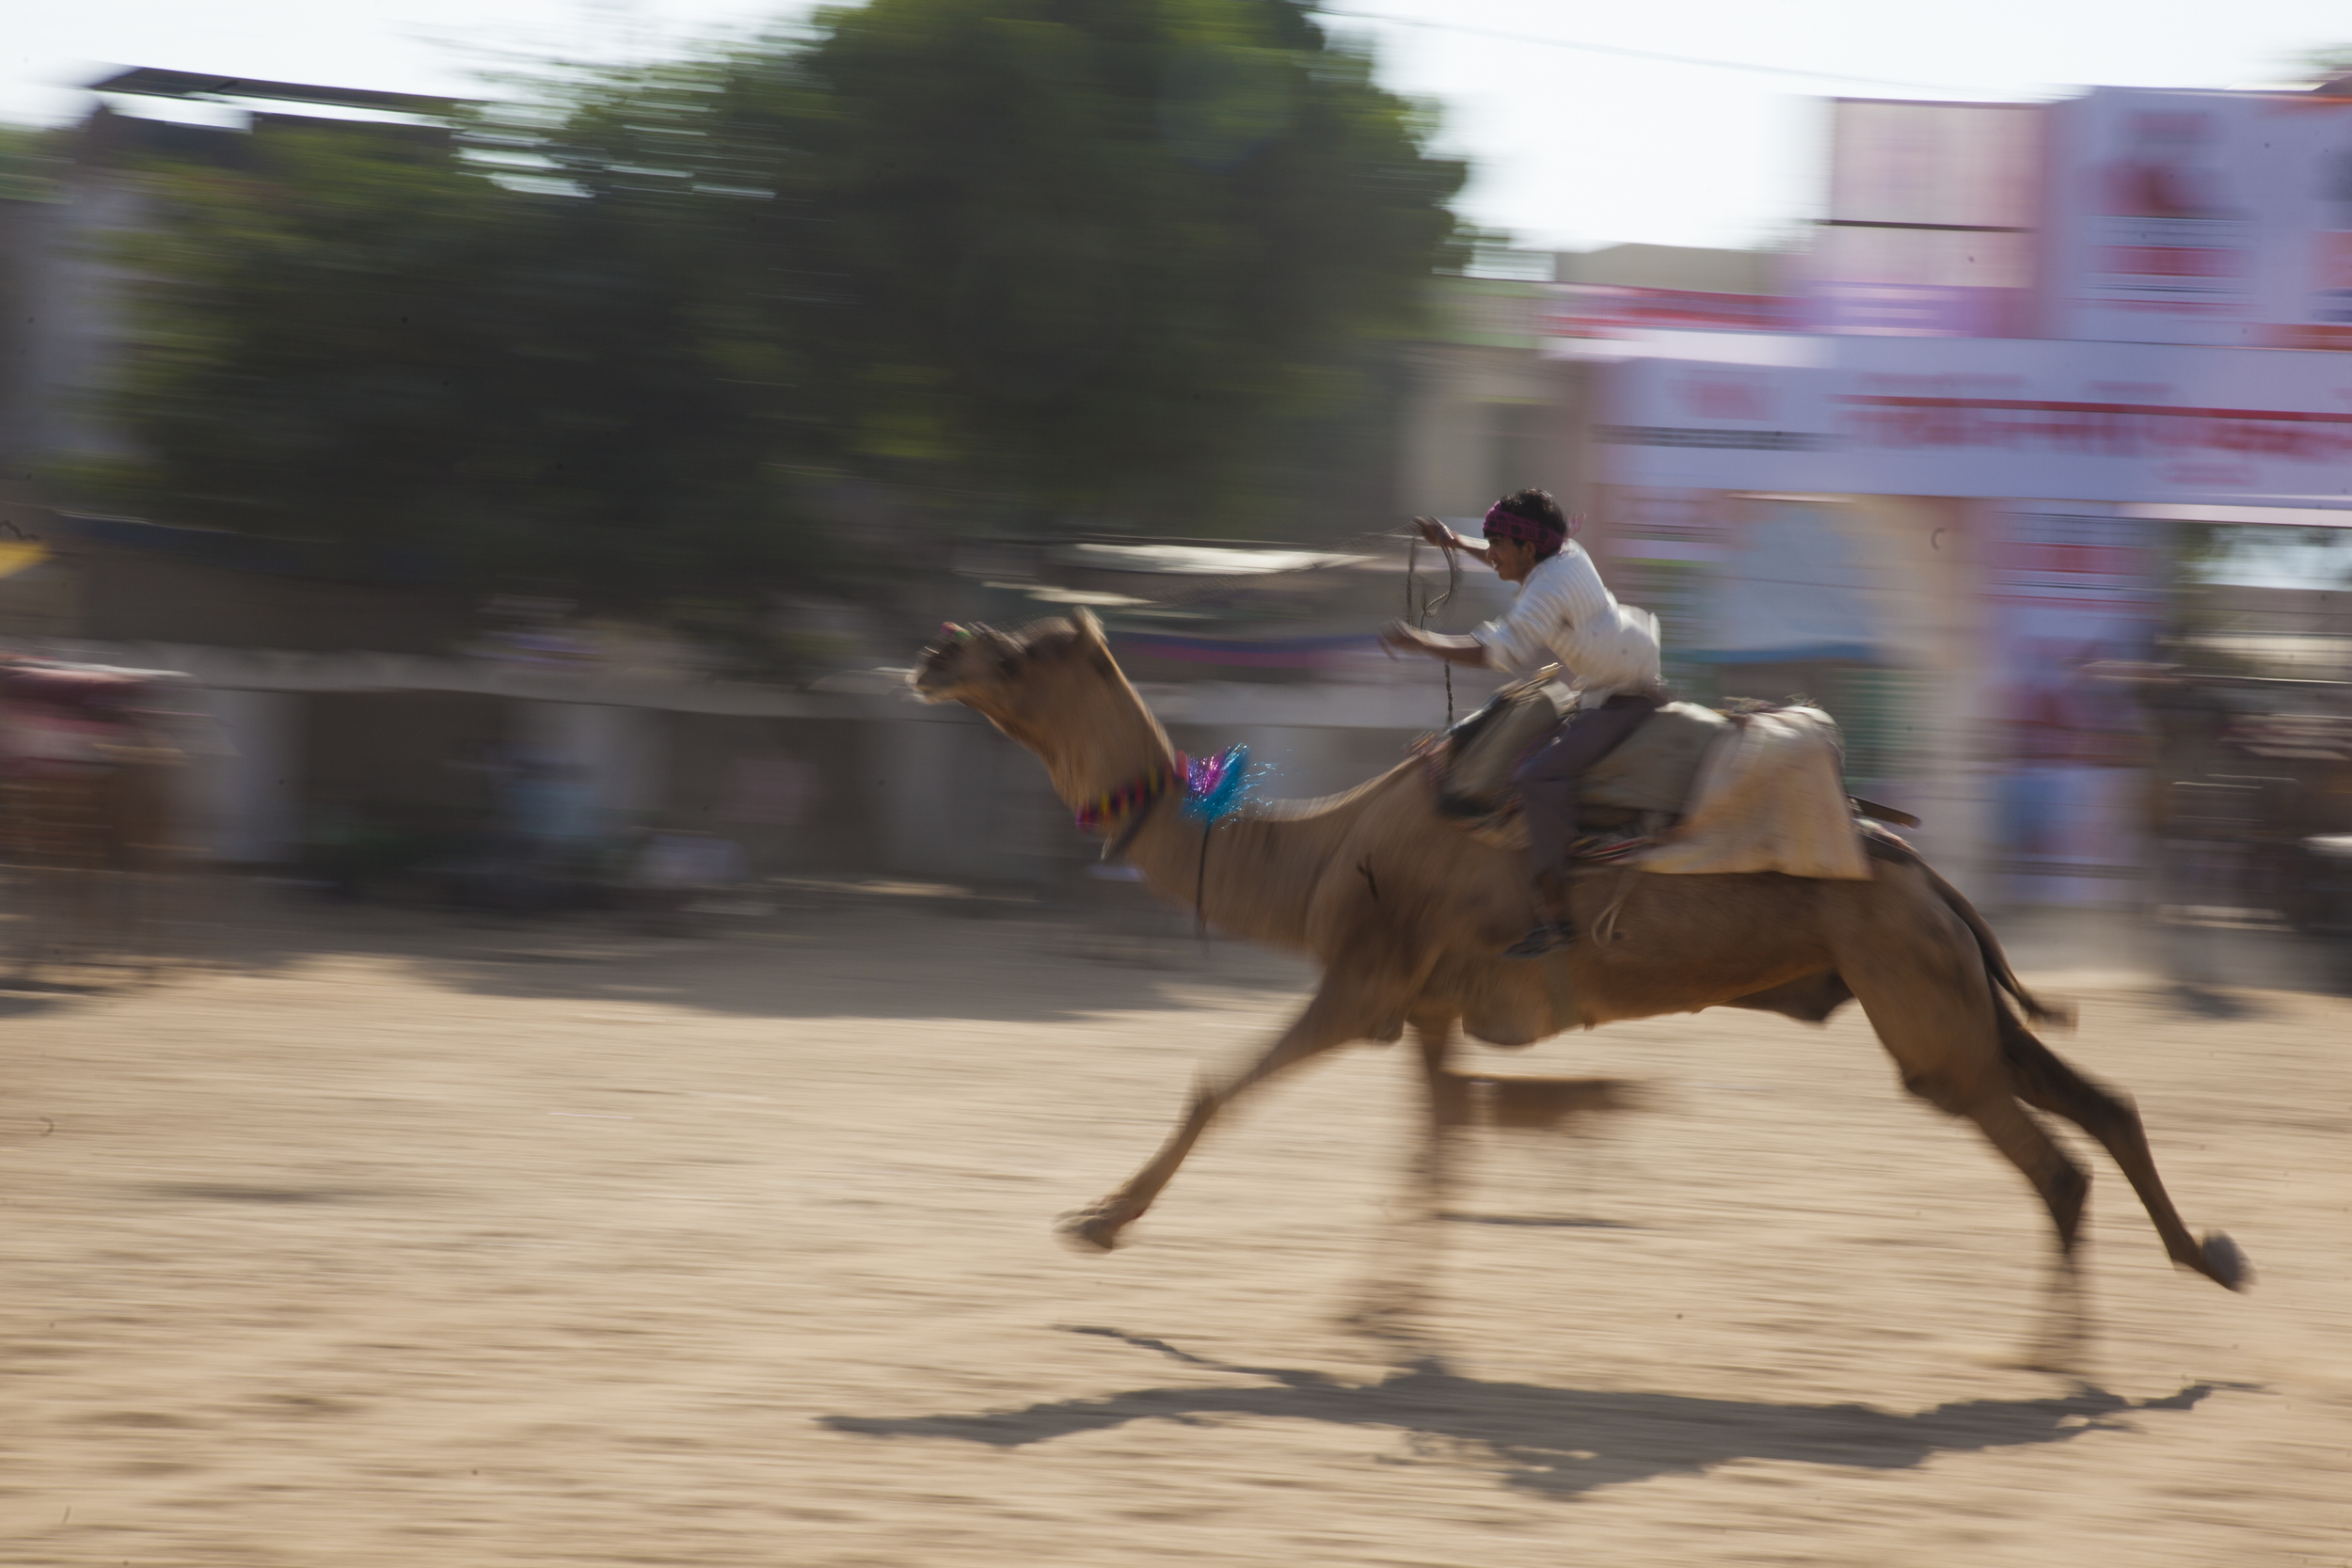 Camel races, Pushkar